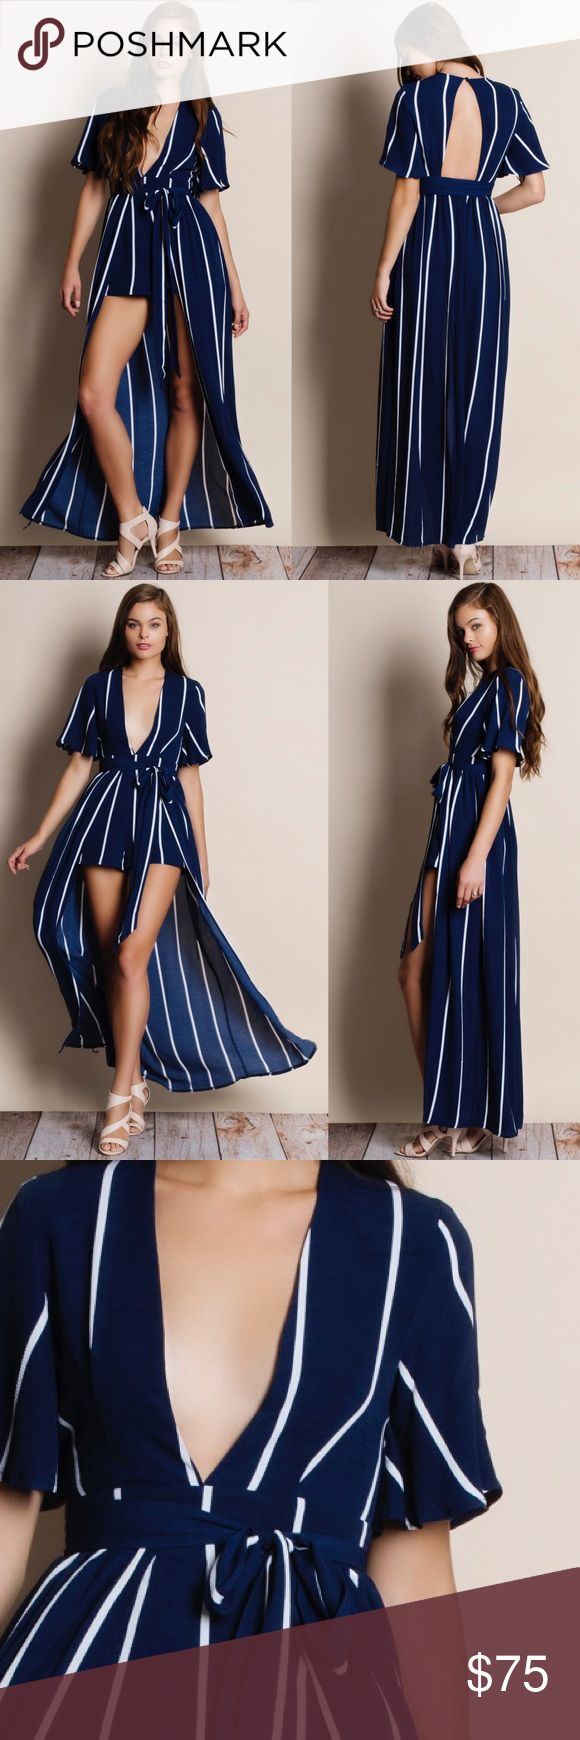 Homage Striped Maxi Romper Dress Striped maxi romper. Available in navy and white. This listing is for the NAVY. Brand new. Junior sizing. Bare Anthology Dresses Maxi